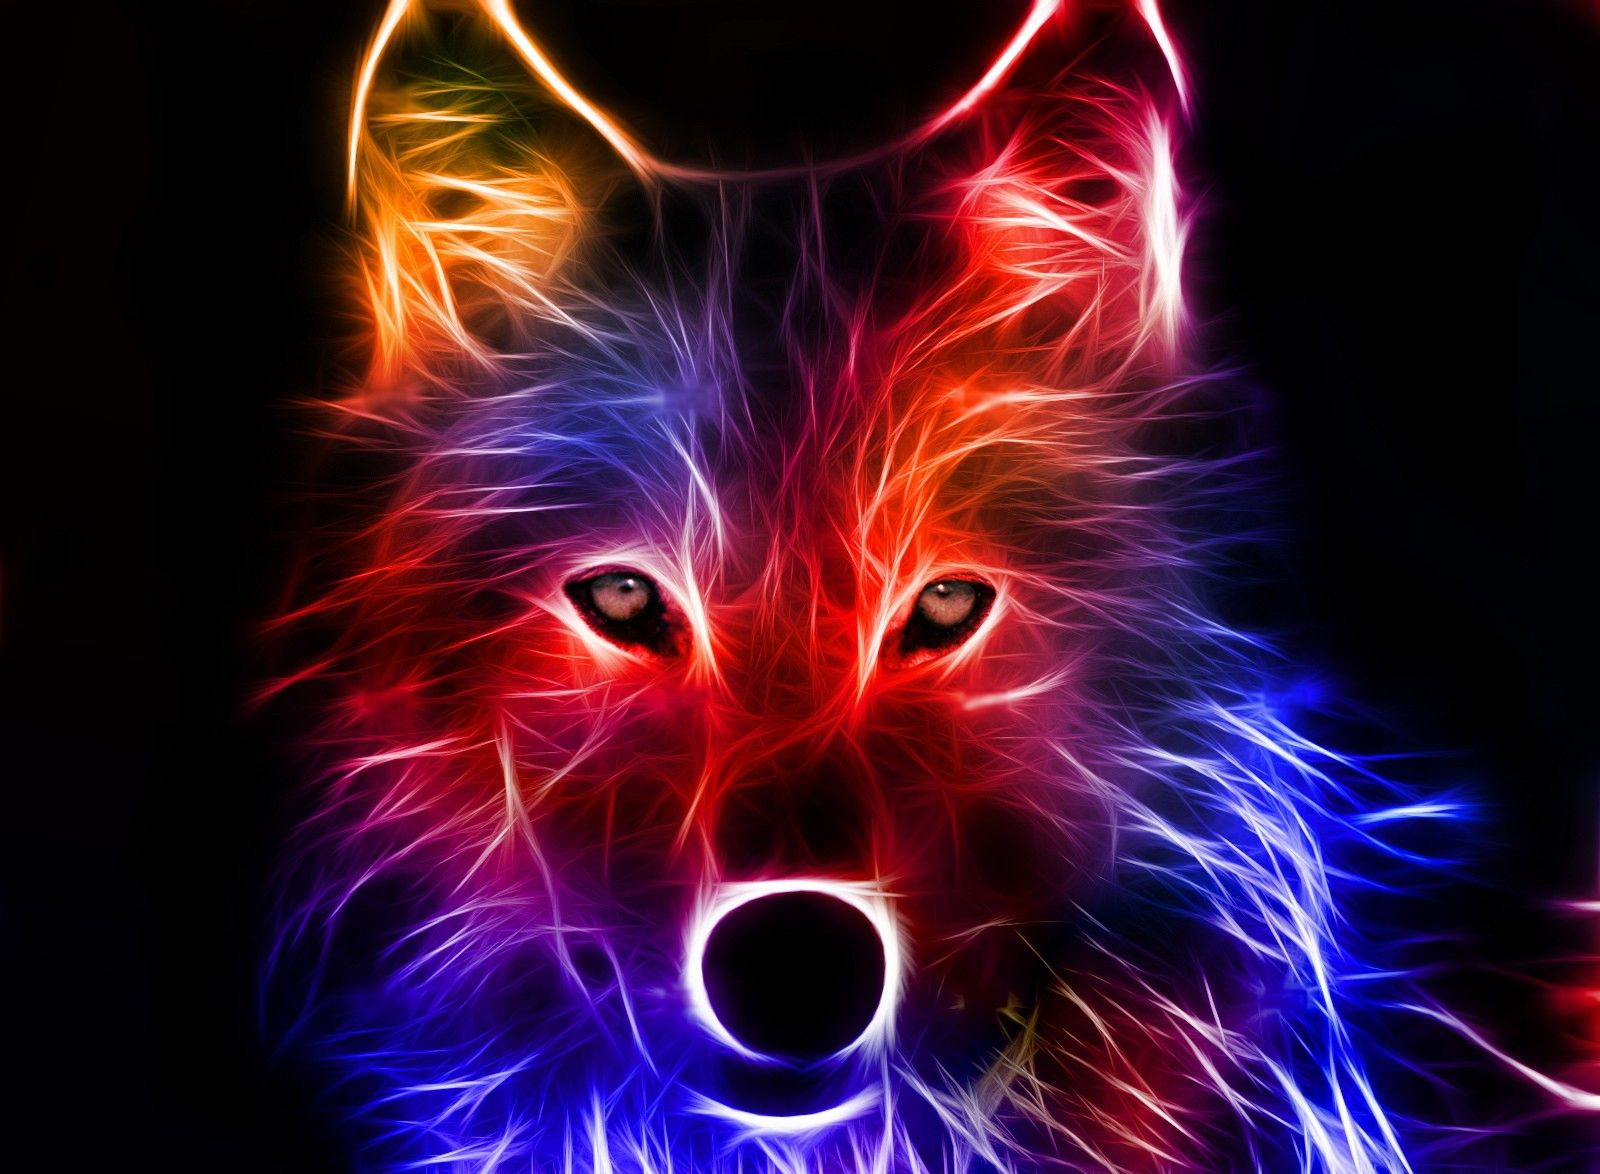 1600x1174 Cool Pictures of Illuminated Wolf #4237463, 1600x1174 | All For Desktop